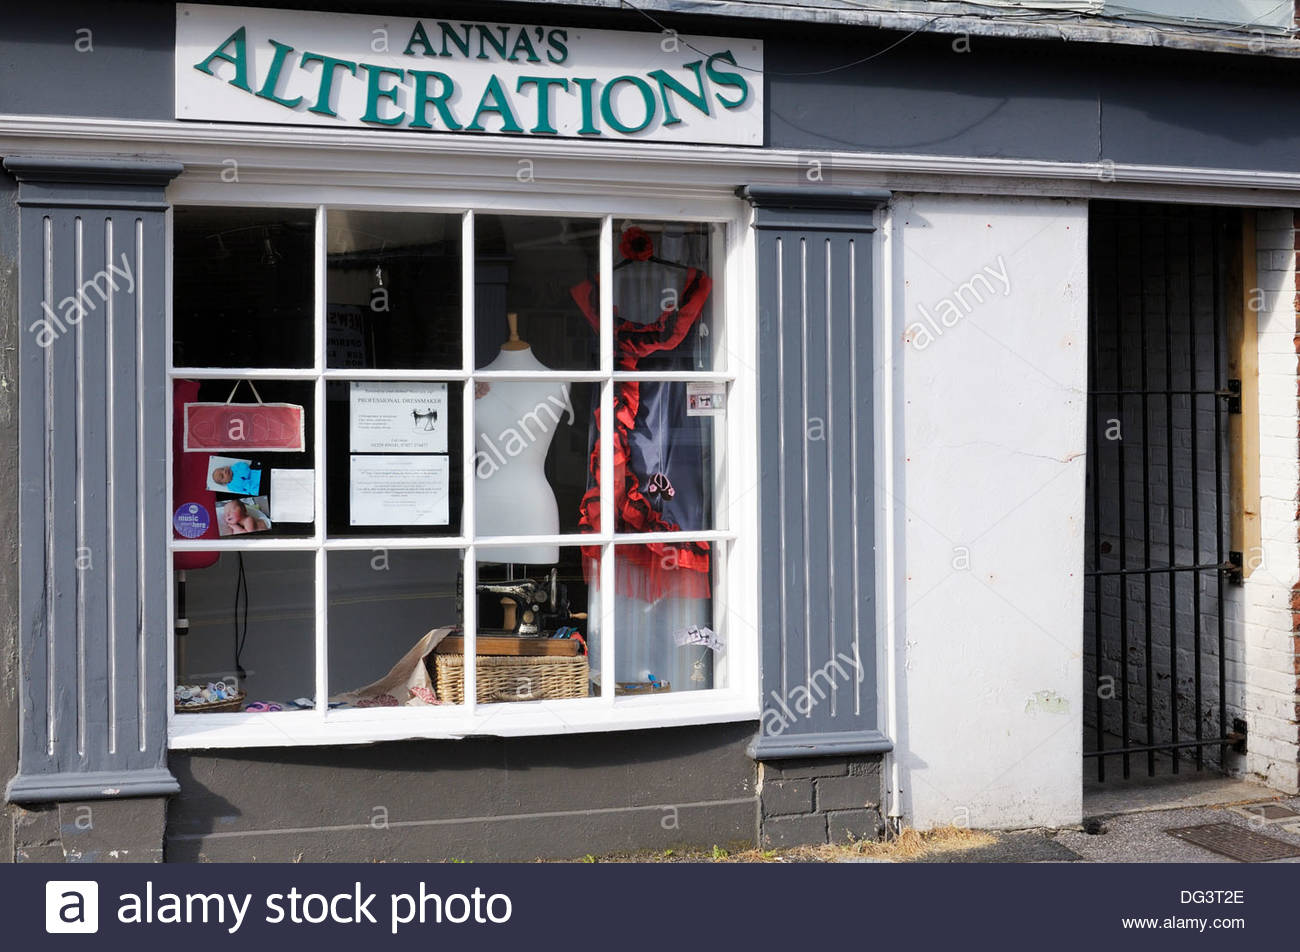 Dressmakers clothes alterations shop, Blandford Forum, Dorset England UK - Stock Image